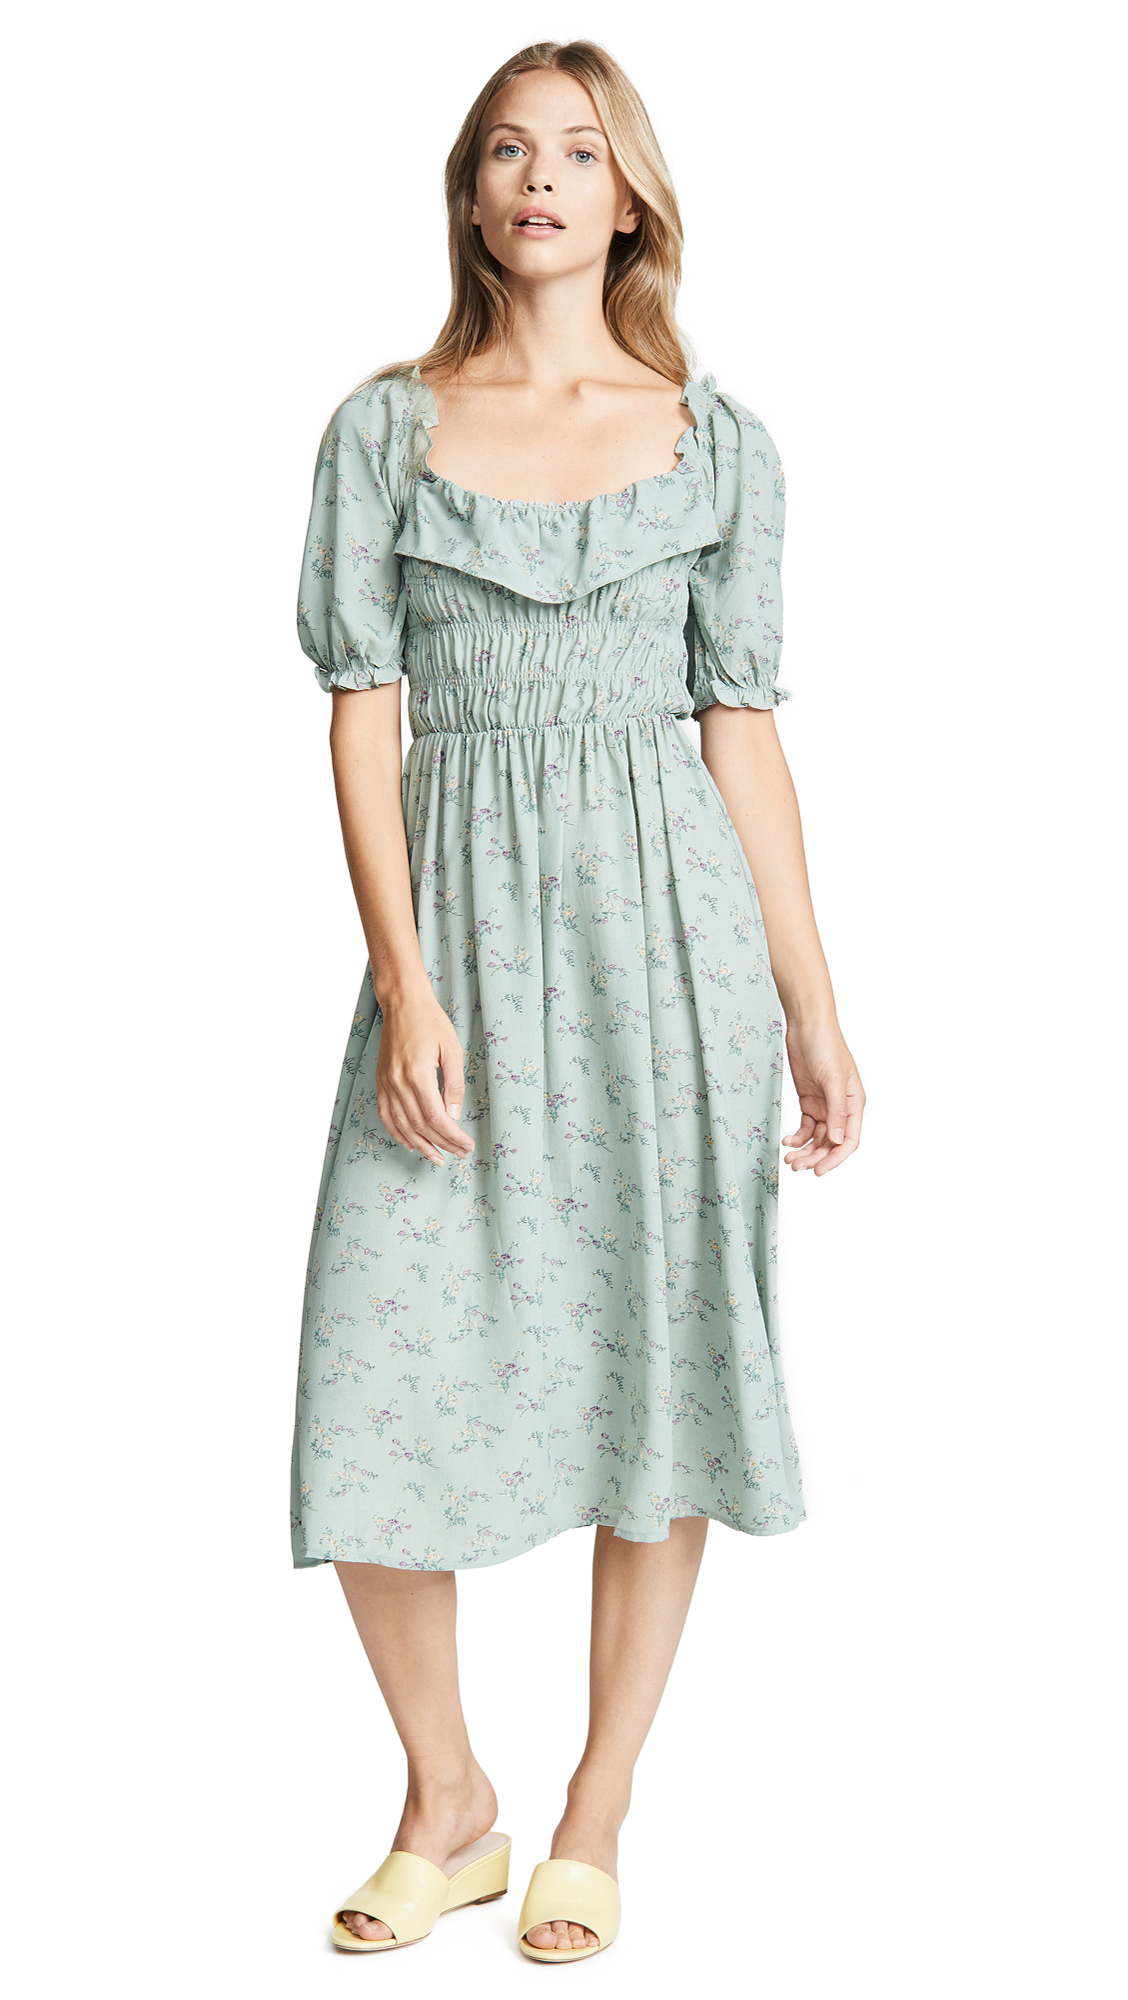 RE:NAMED Re: Named Traci Dress in Sage